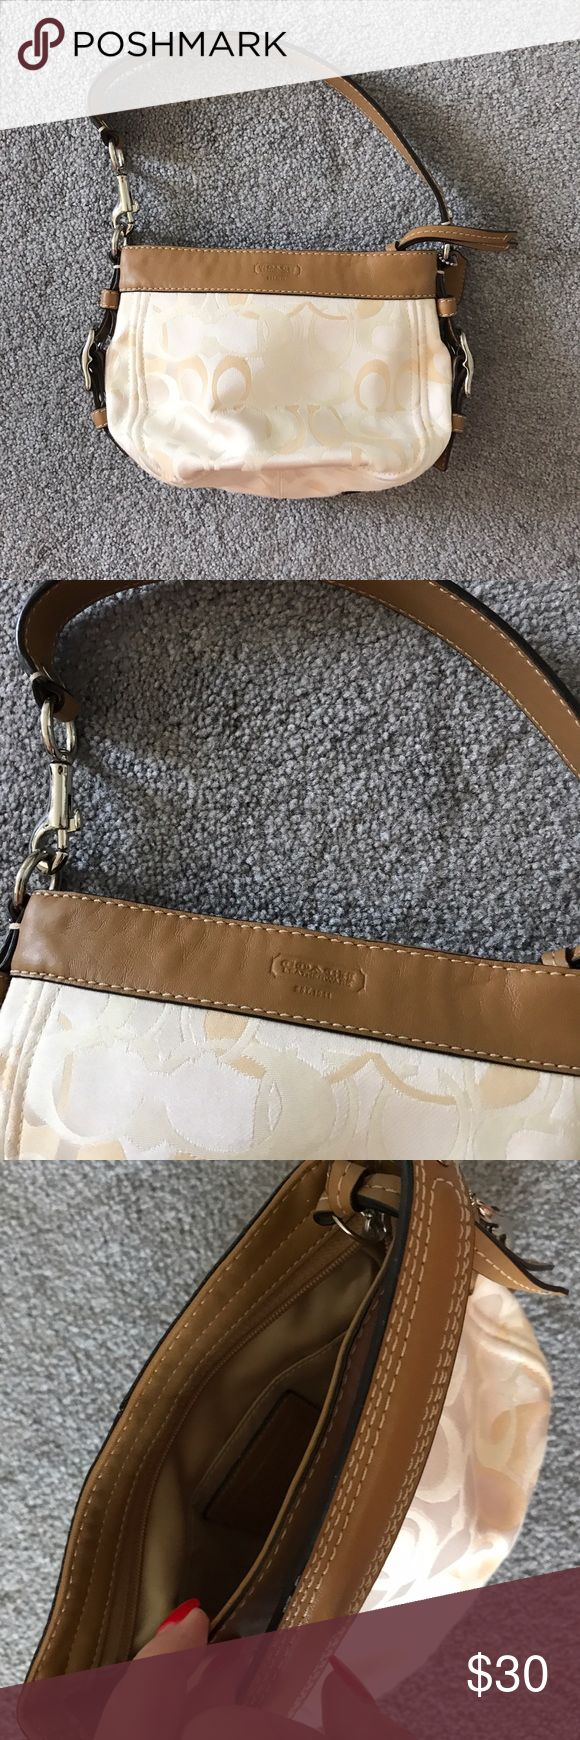 Tan Signature Coach Purse Authentic Tan Coach purse in great condition, one flaw, small pen mark (see photo). Signature Coach logos throughout Bag. Tan and beige in color. Coach Bags Shoulder Bags